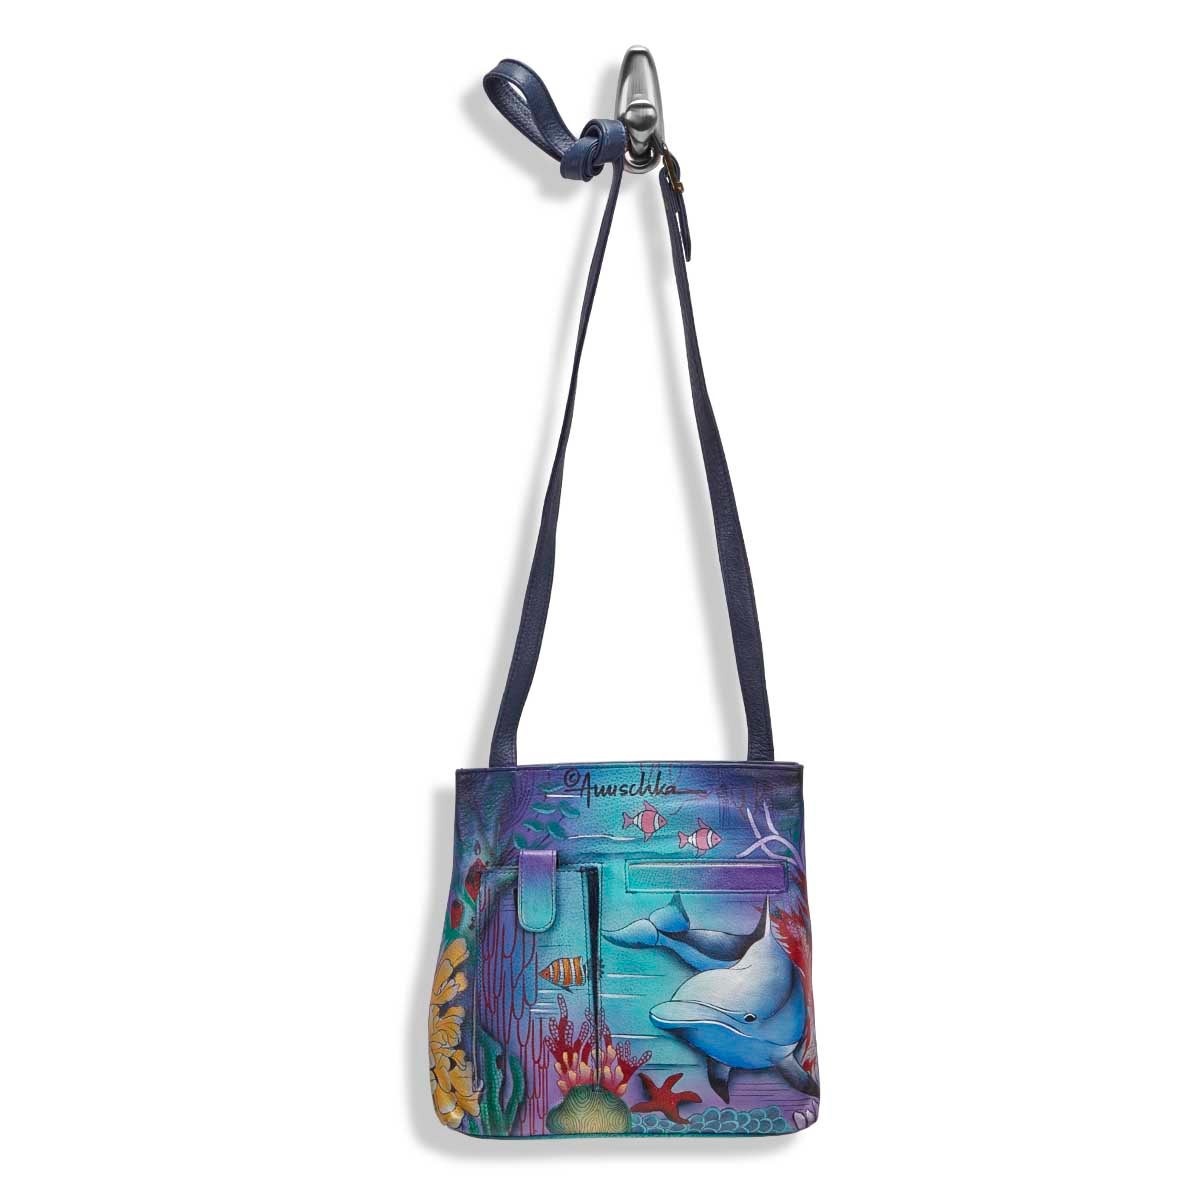 Painted lthr Dolphin World crossbody